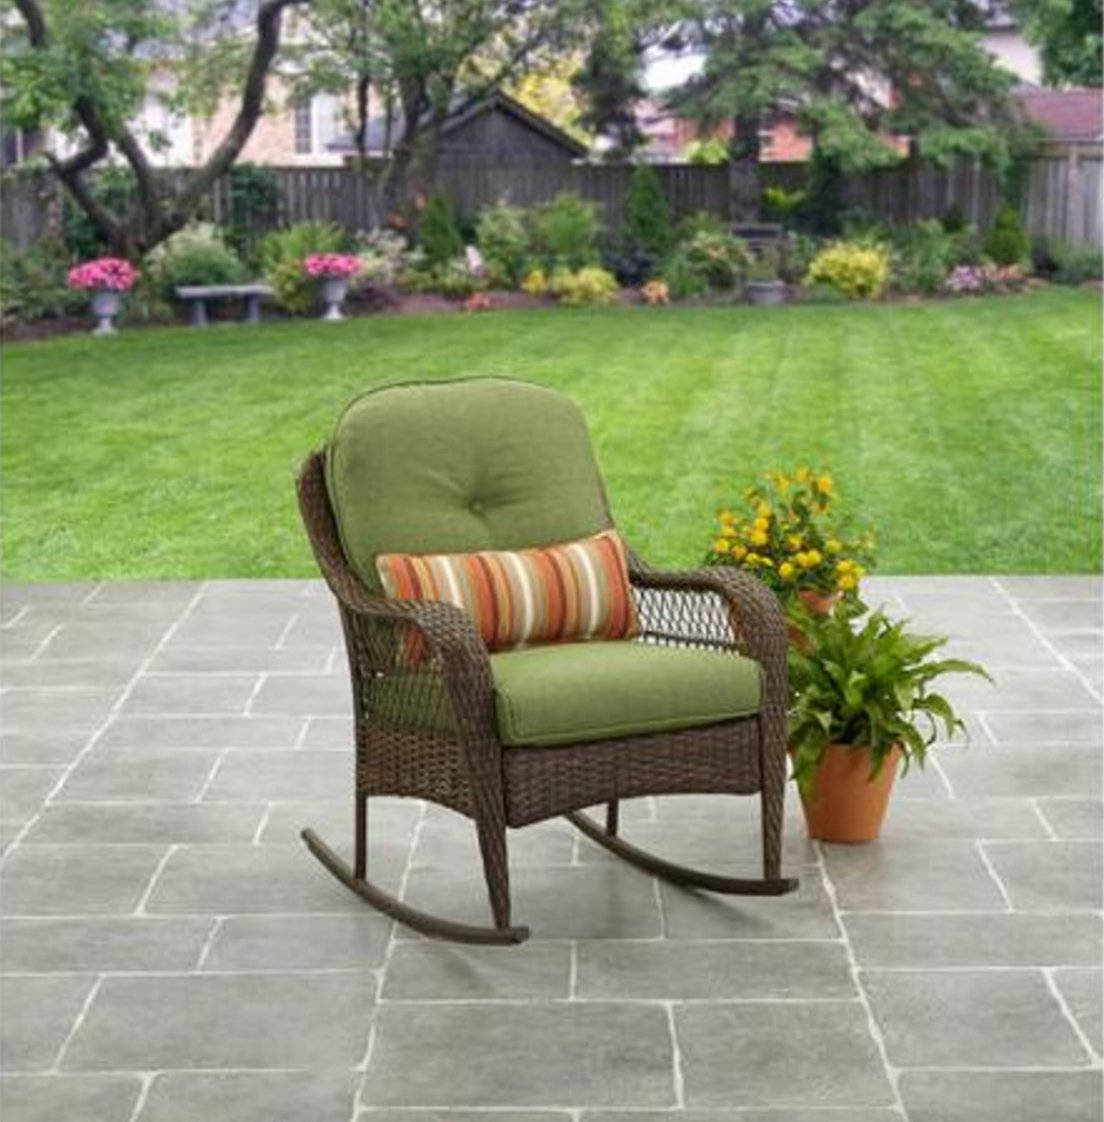 Patio Furniture Rocking Chair Brown Wicker Outdoor Porch All-Weather UV Treated